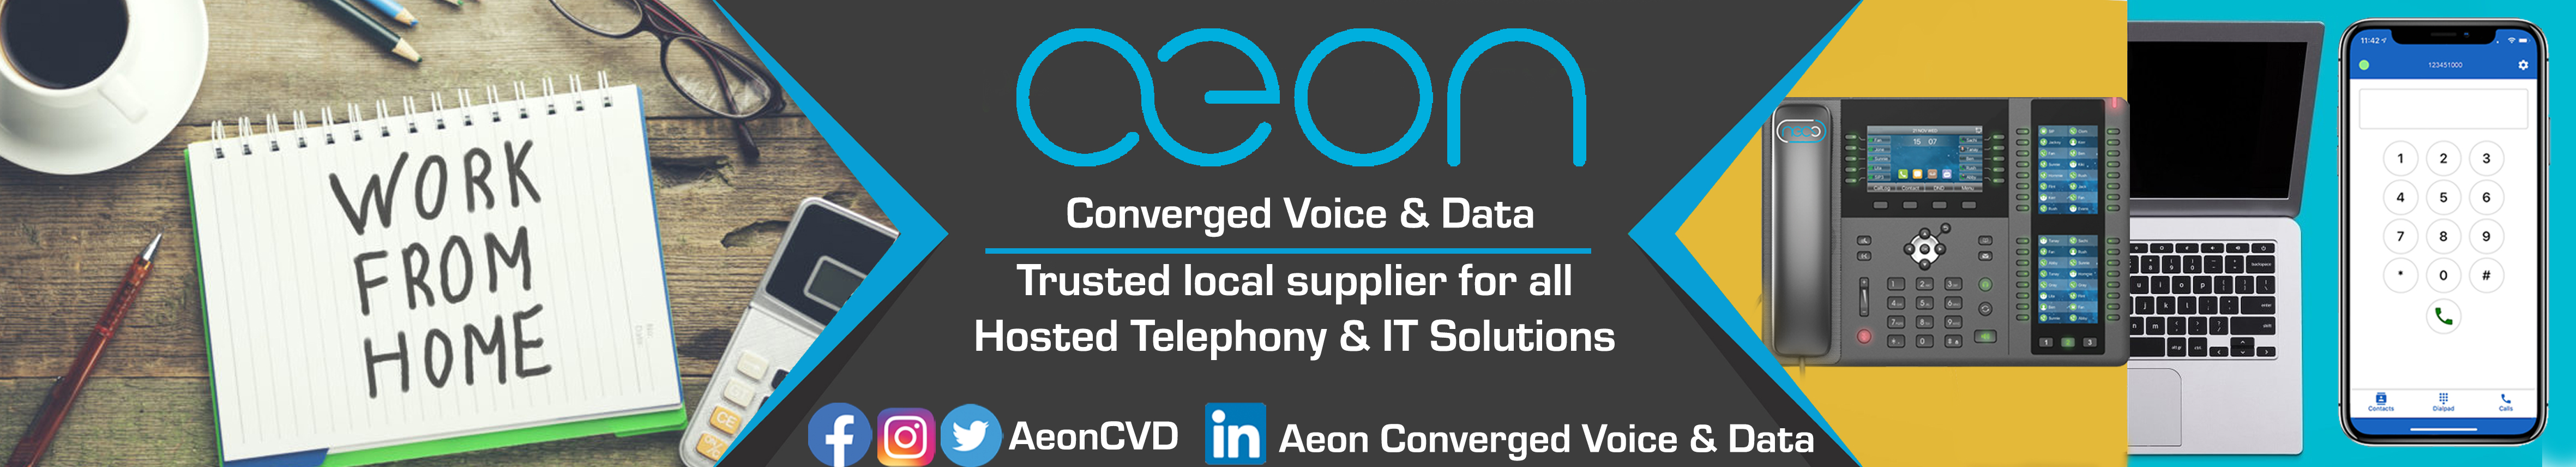 Aeon Converged Voice & Data